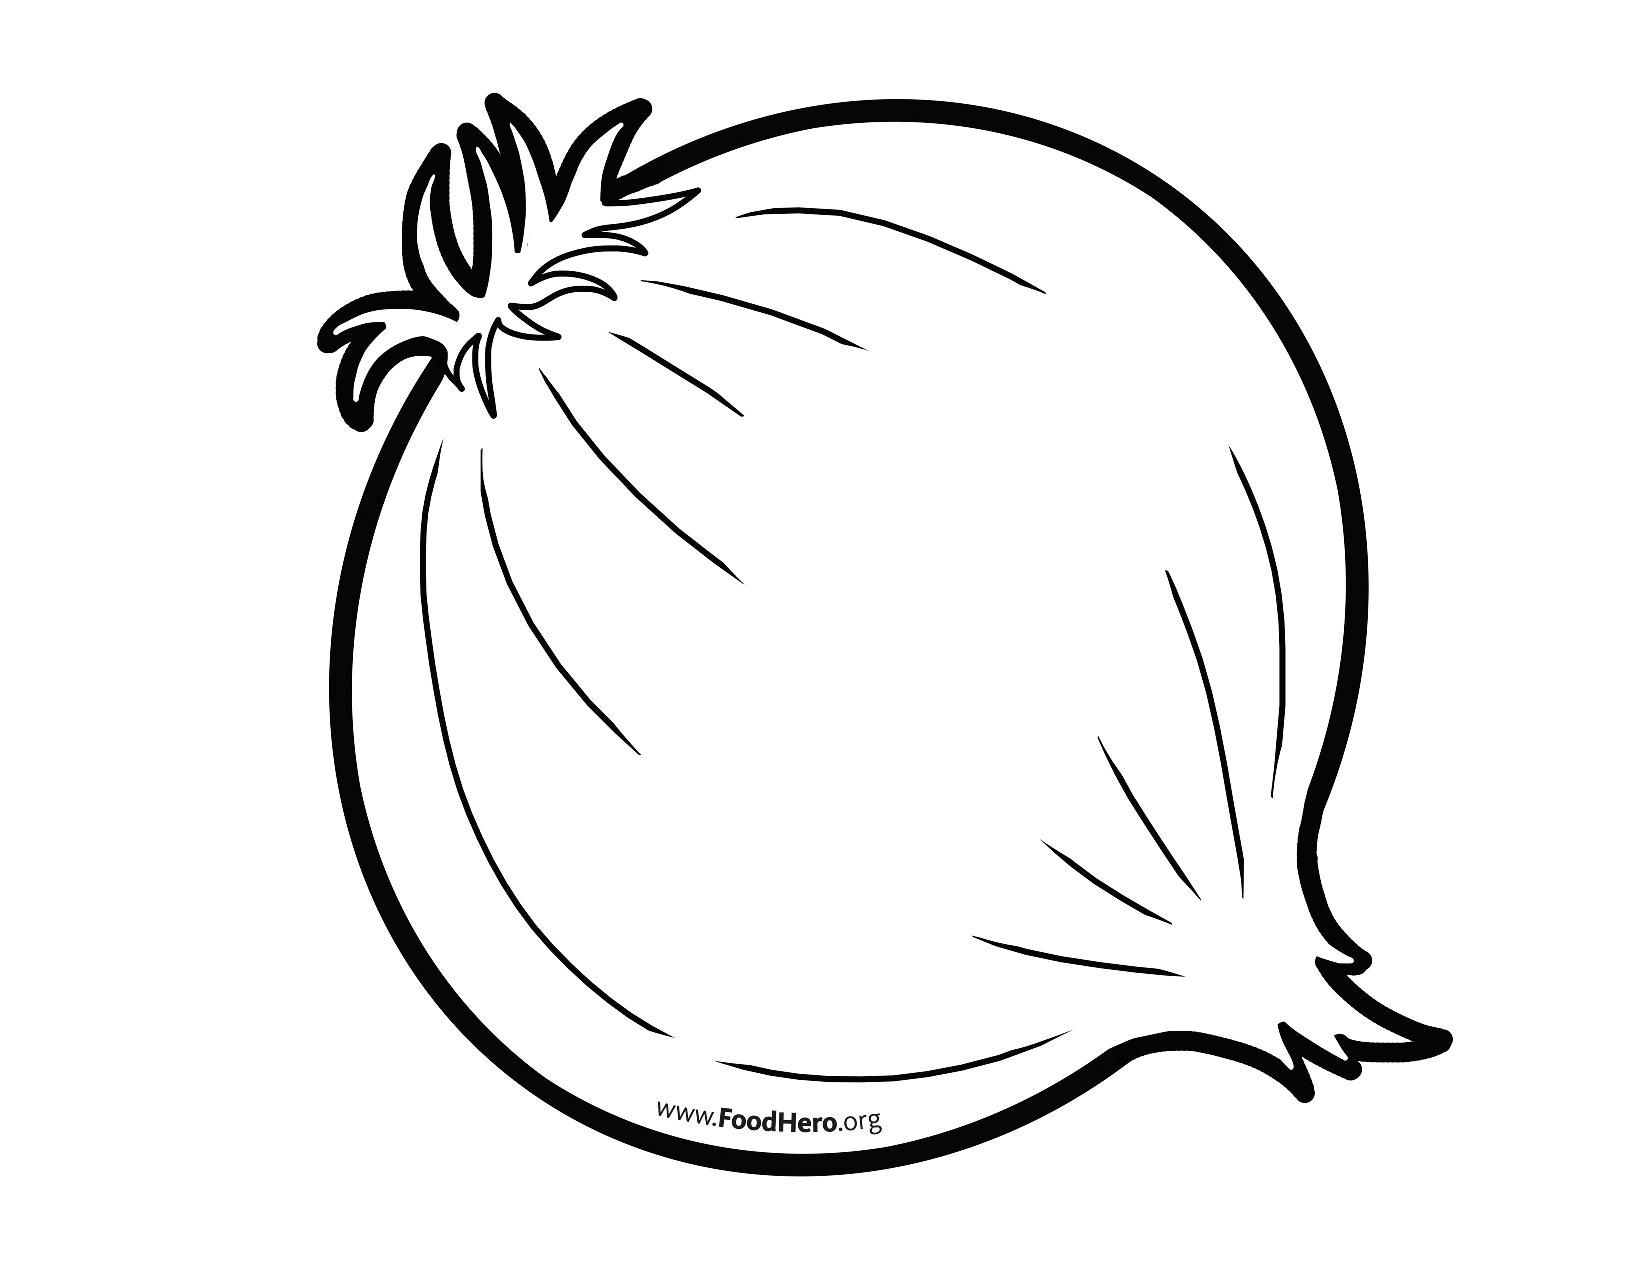 Veggies in pot black and white outline clipart graphic free Onion outline from FoodHero.org | Ingredients - Vegetables ... graphic free